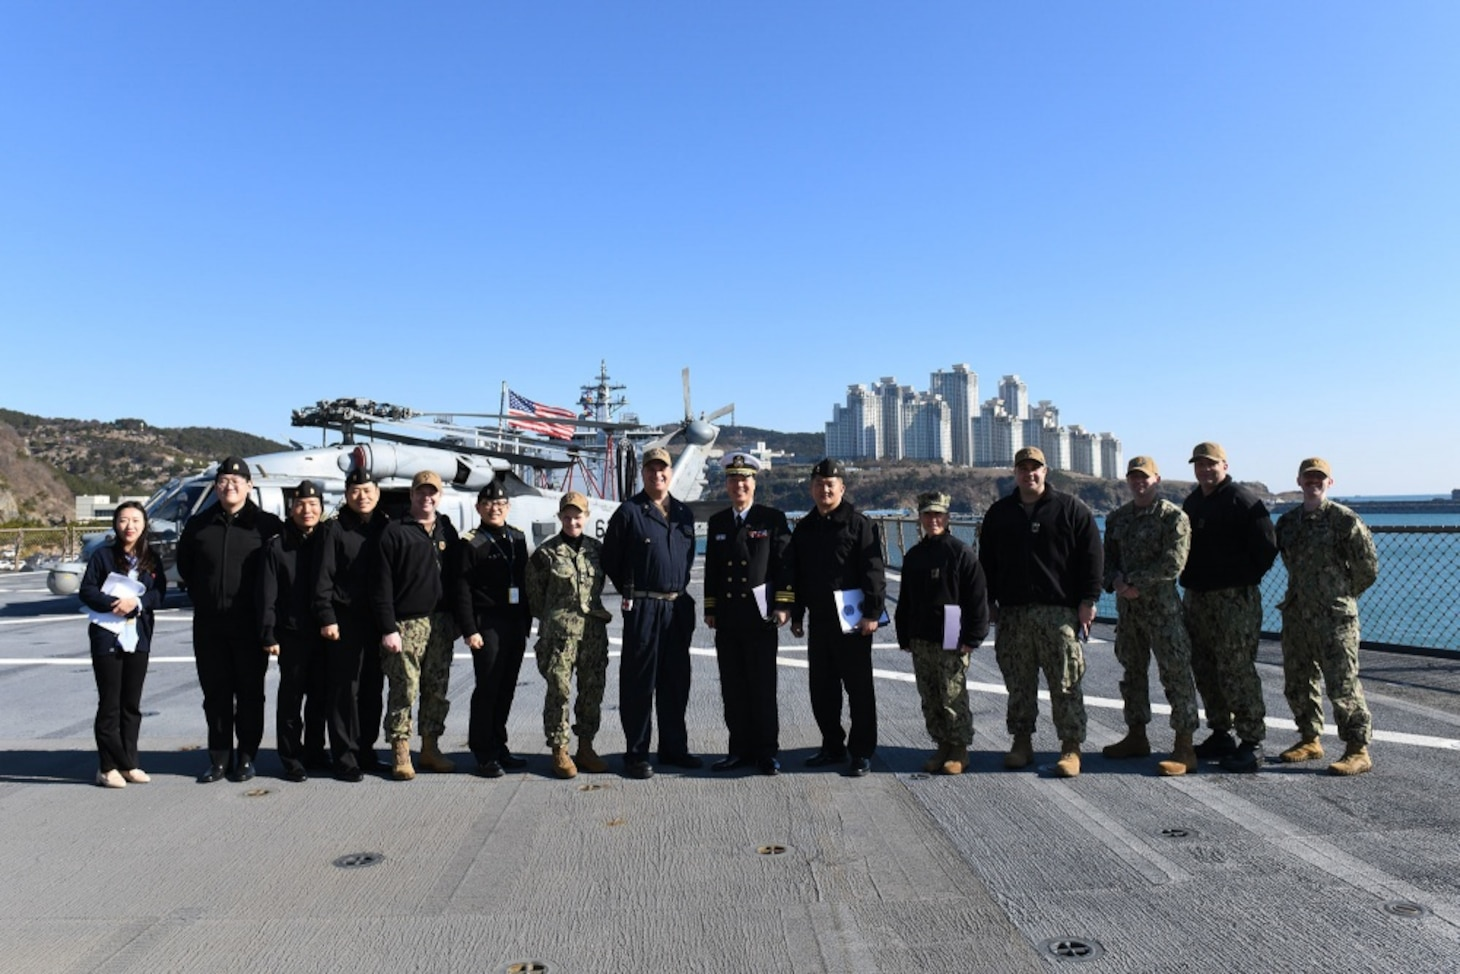 U.S. 7th Fleet and Blue Ridge Sailors pose for a photo with Republic of Korea Navy personnel prior to a medical demonstration held aboard U.S. 7th Fleet flagship, USS Blue Ridge. Blue Ridge with embarked U.S. 7th Fleet Sailors arrived in Busan, Republic of Korea (ROK) for a regularly scheduled port visit Feb. 5. During their visit they will engage in local culture, hose military-to-military engagements and build relationships through music and public service activities.